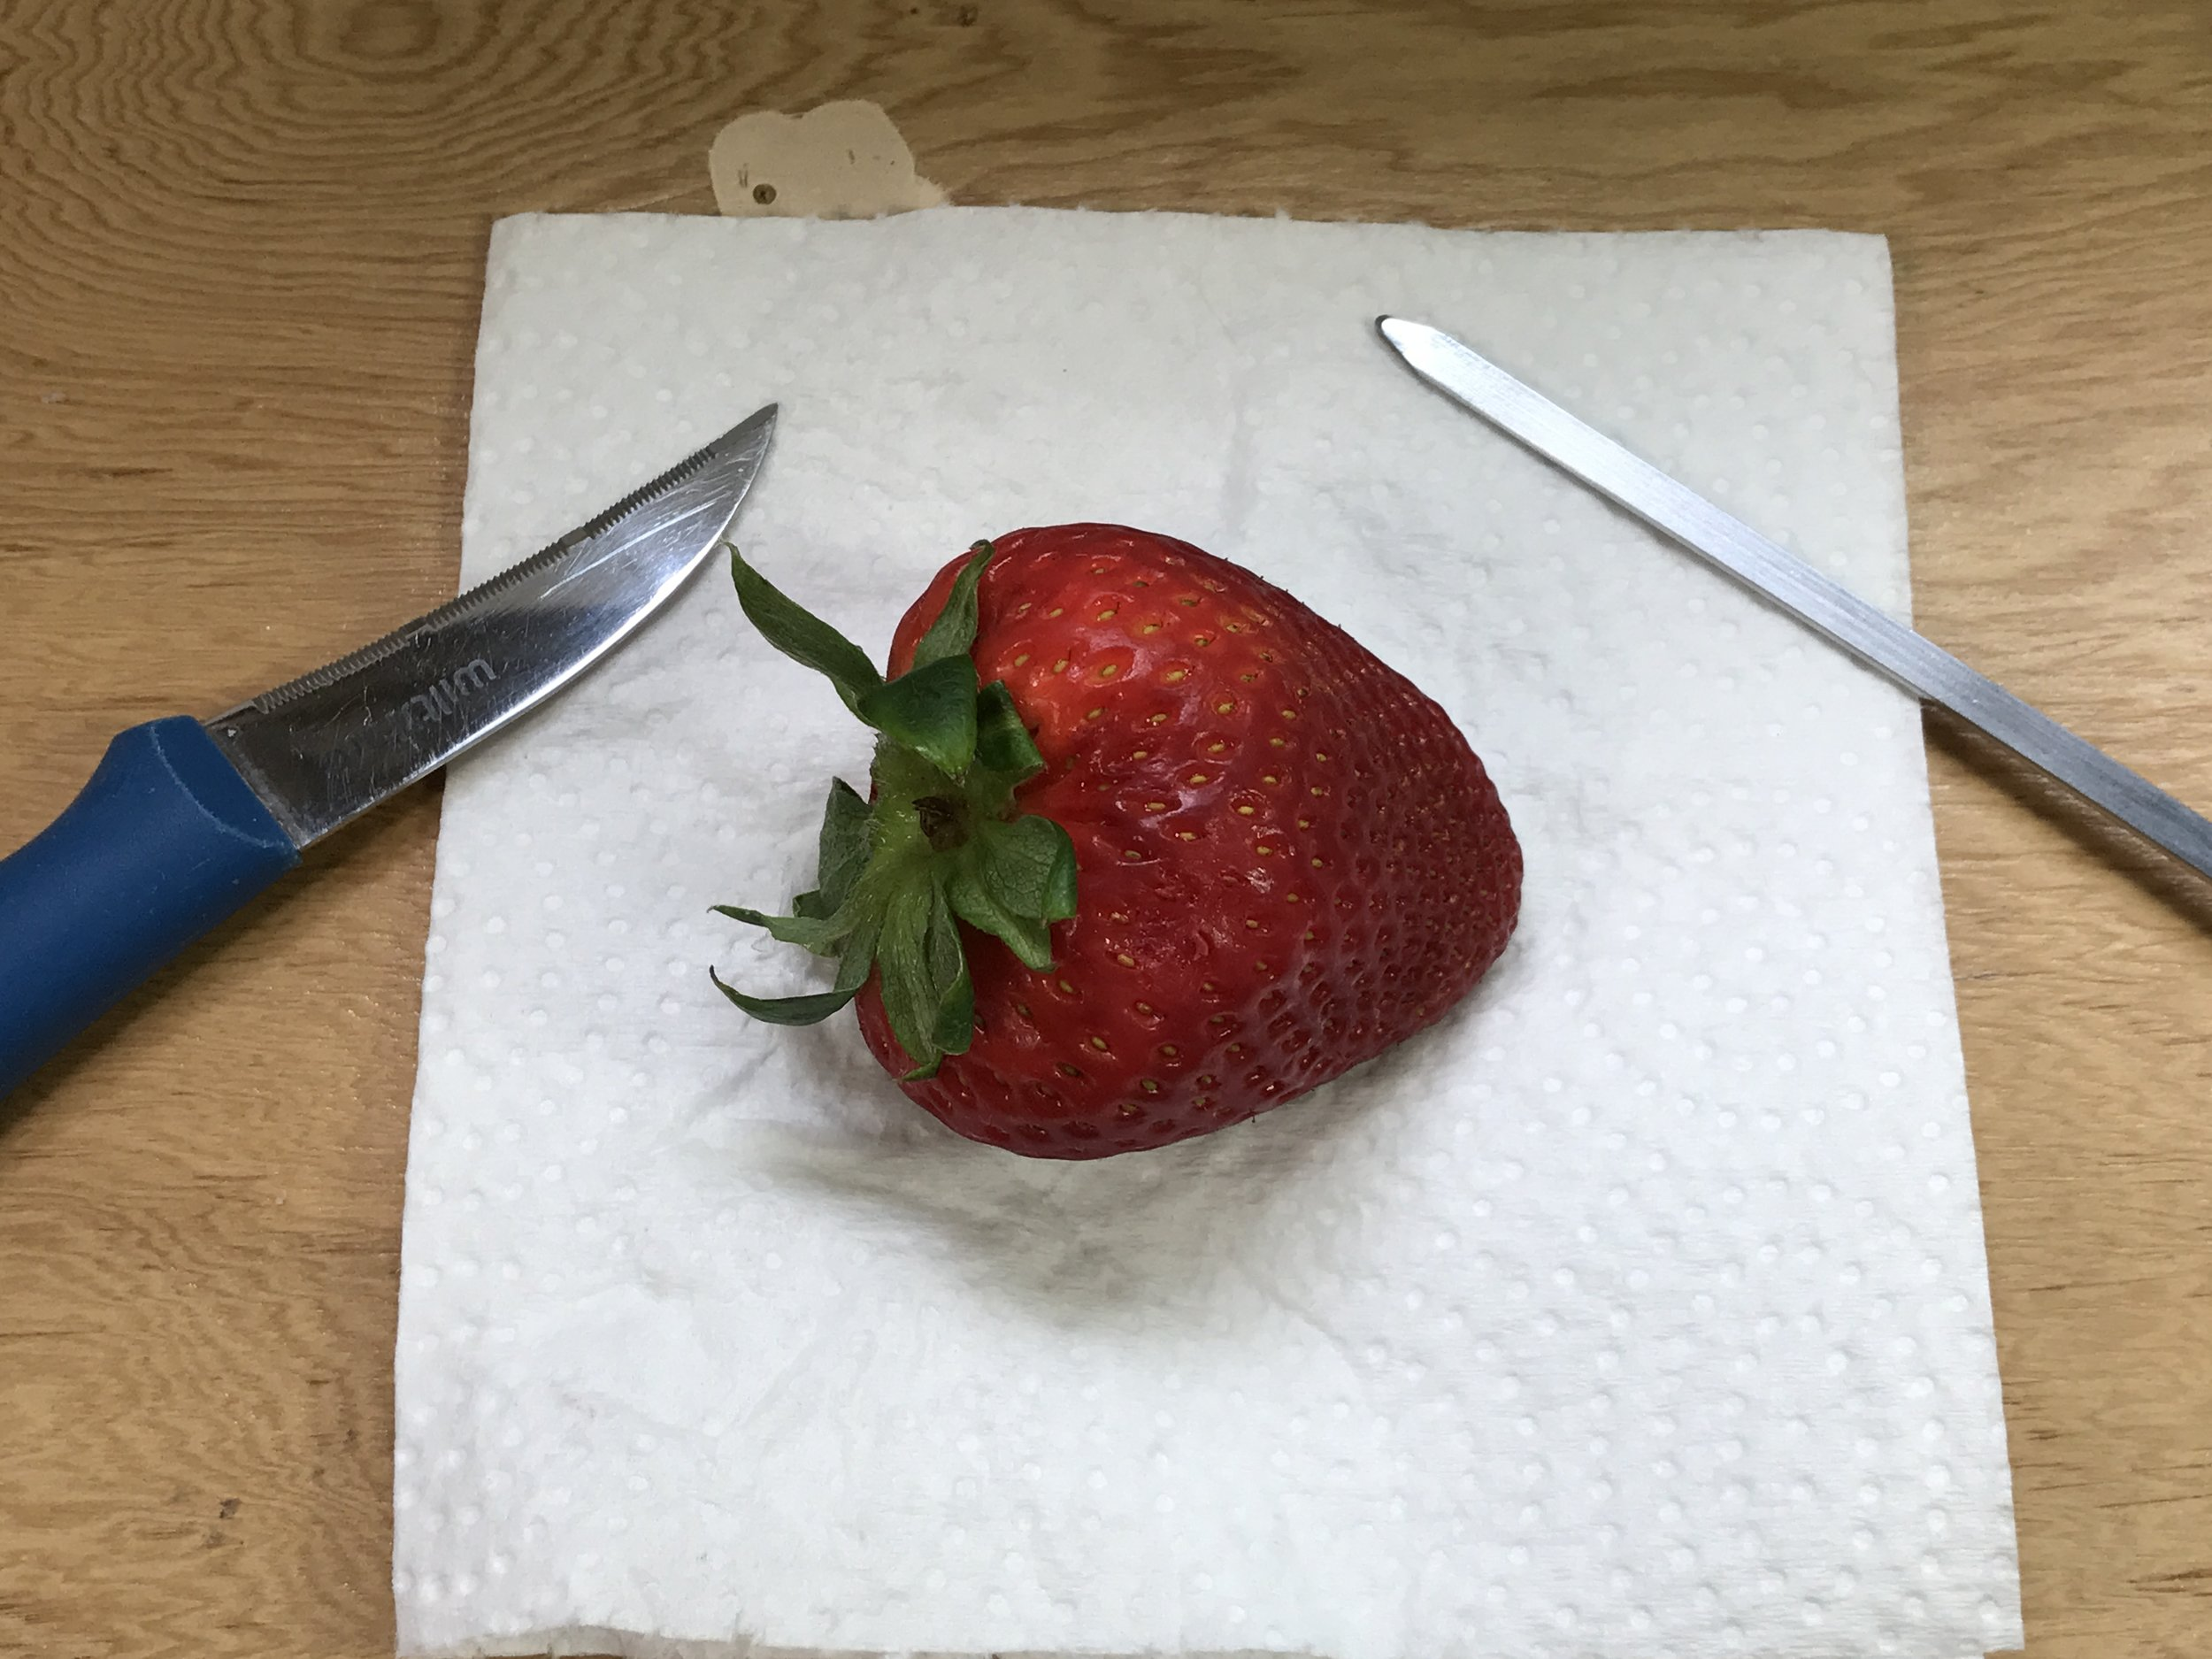 How to Make a Strawberry Pipe